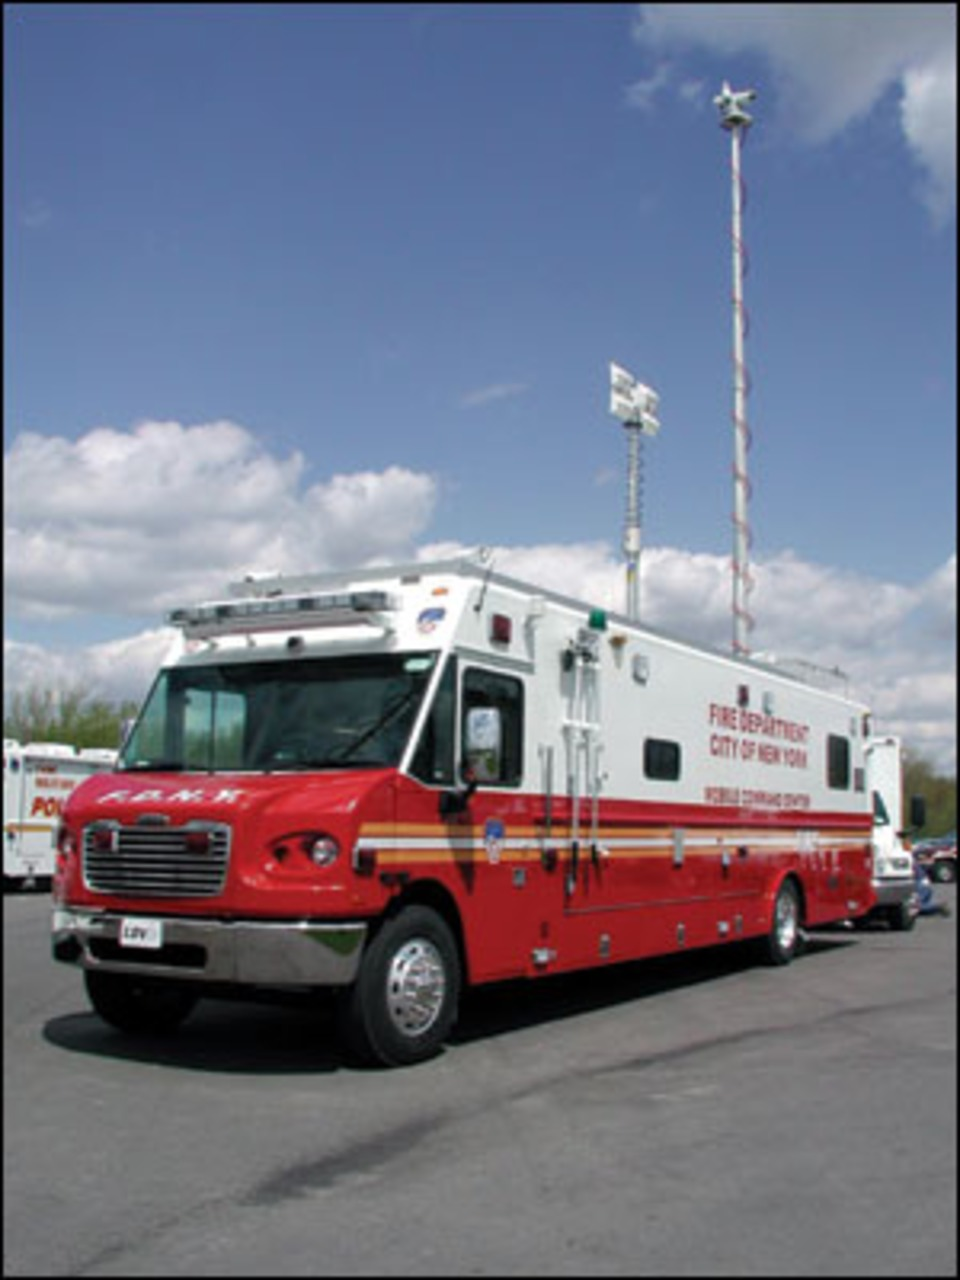 Communications And Command Vehicles Dispatch Centers On